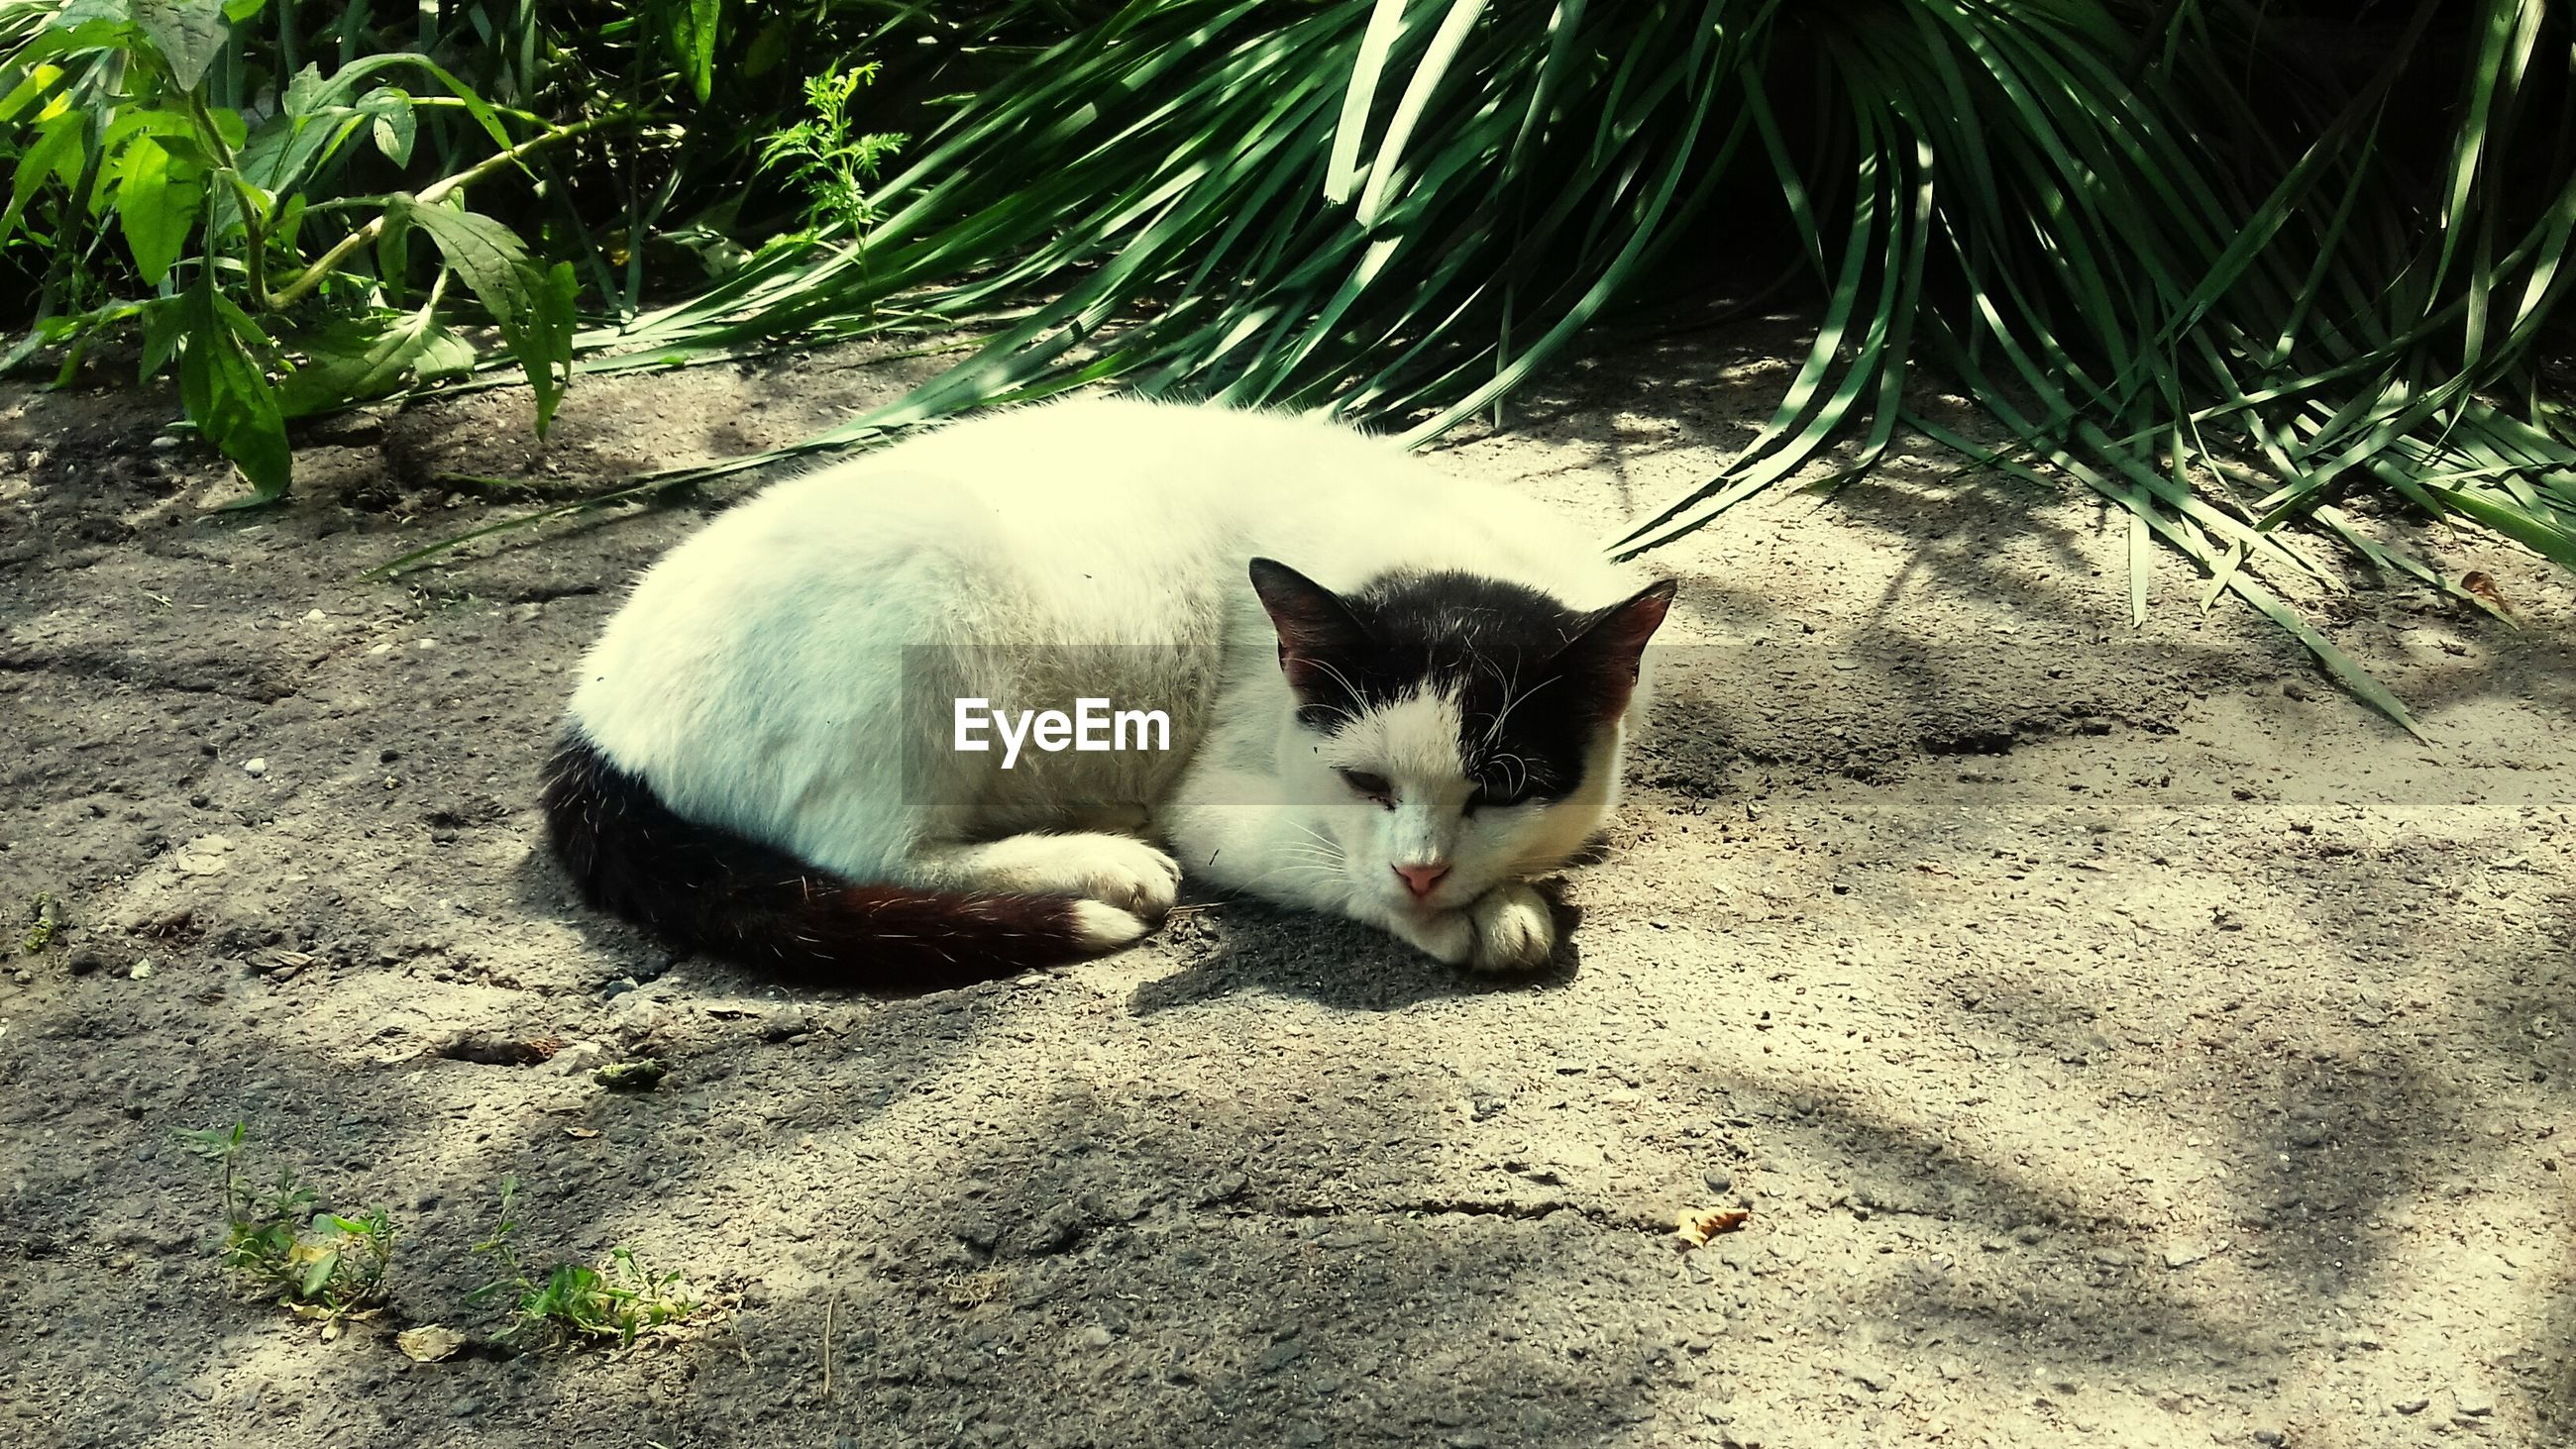 animal themes, one animal, domestic animals, pets, mammal, zoology, cat, relaxation, domestic cat, resting, vertebrate, animal, feline, outdoors, day, stray animal, footpath, no people, loyalty, pampered pets